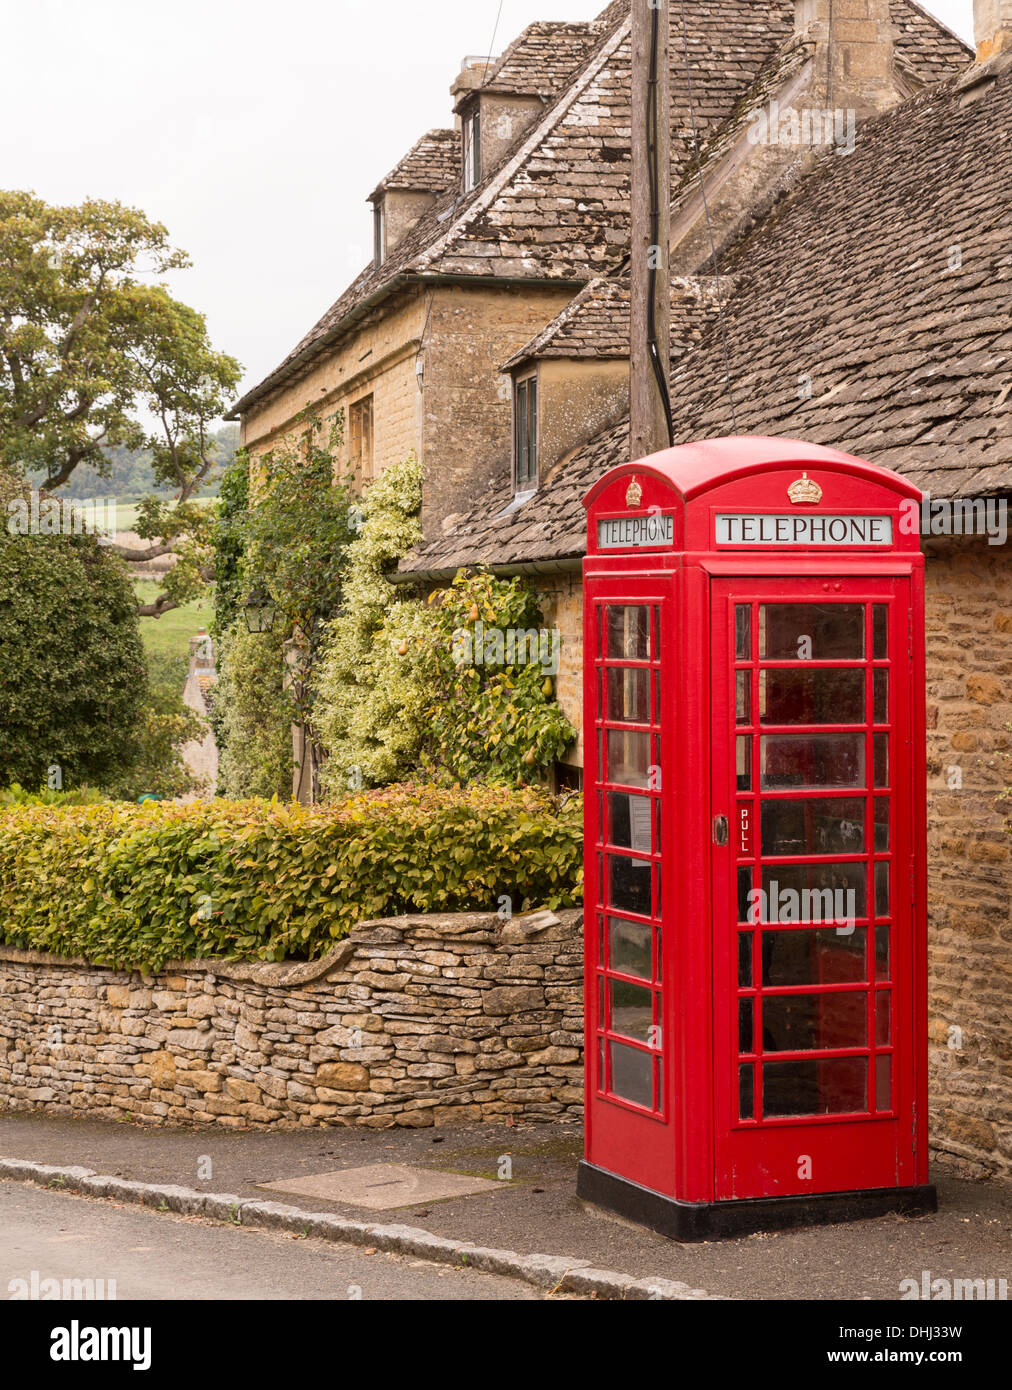 Red telephone box in Cotswold village, England, UK - Stock Image